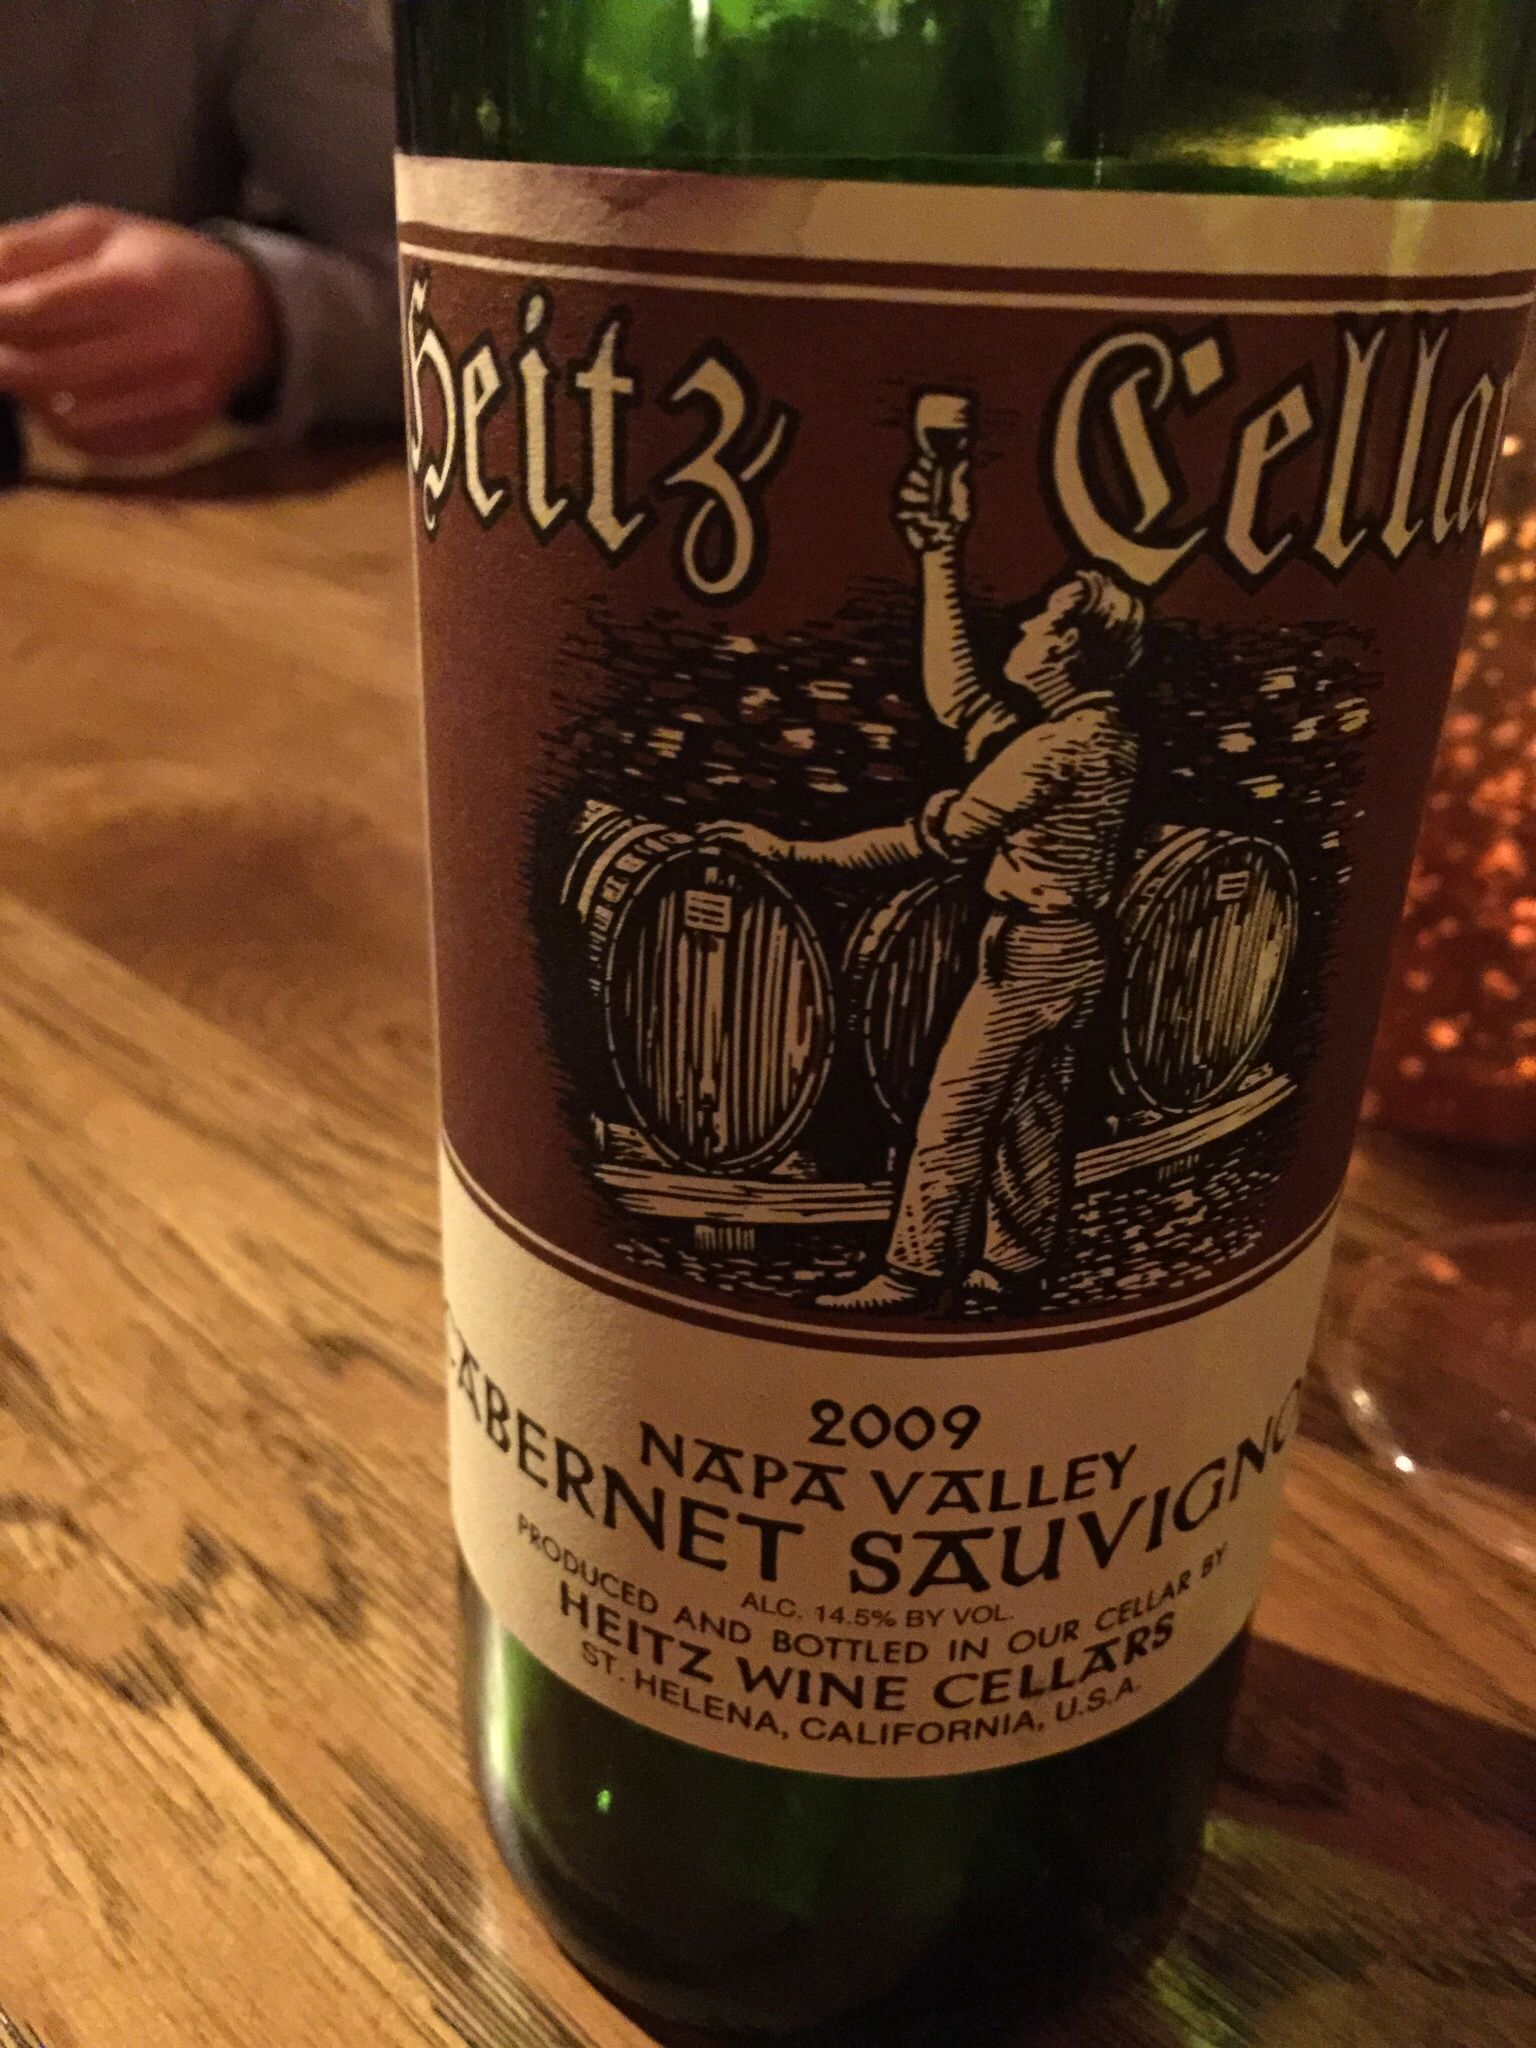 2009 Heitz Cellars Cabernet Sauvignon. This bottle rounded out a fantastic dinner. A classic & 2009 Heitz Cellars Cabernet Sauvignon. This bottle rounded out a ...